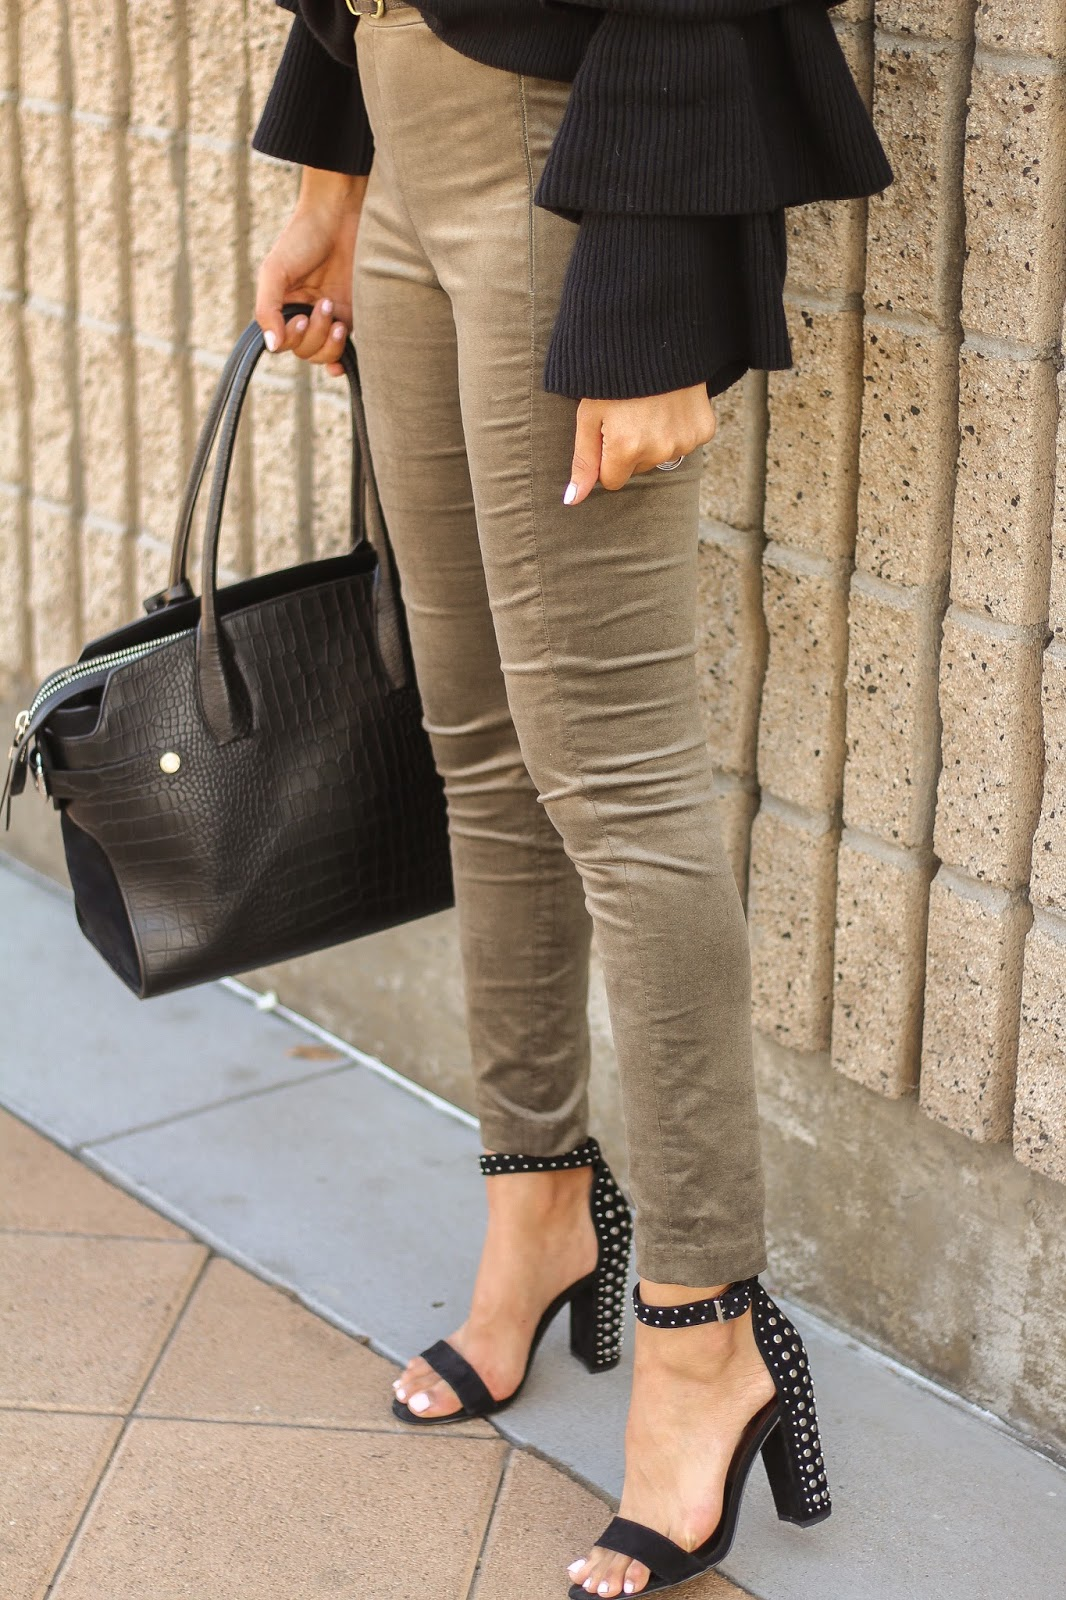 Velvet Pants and studded heels Outfit for Fall